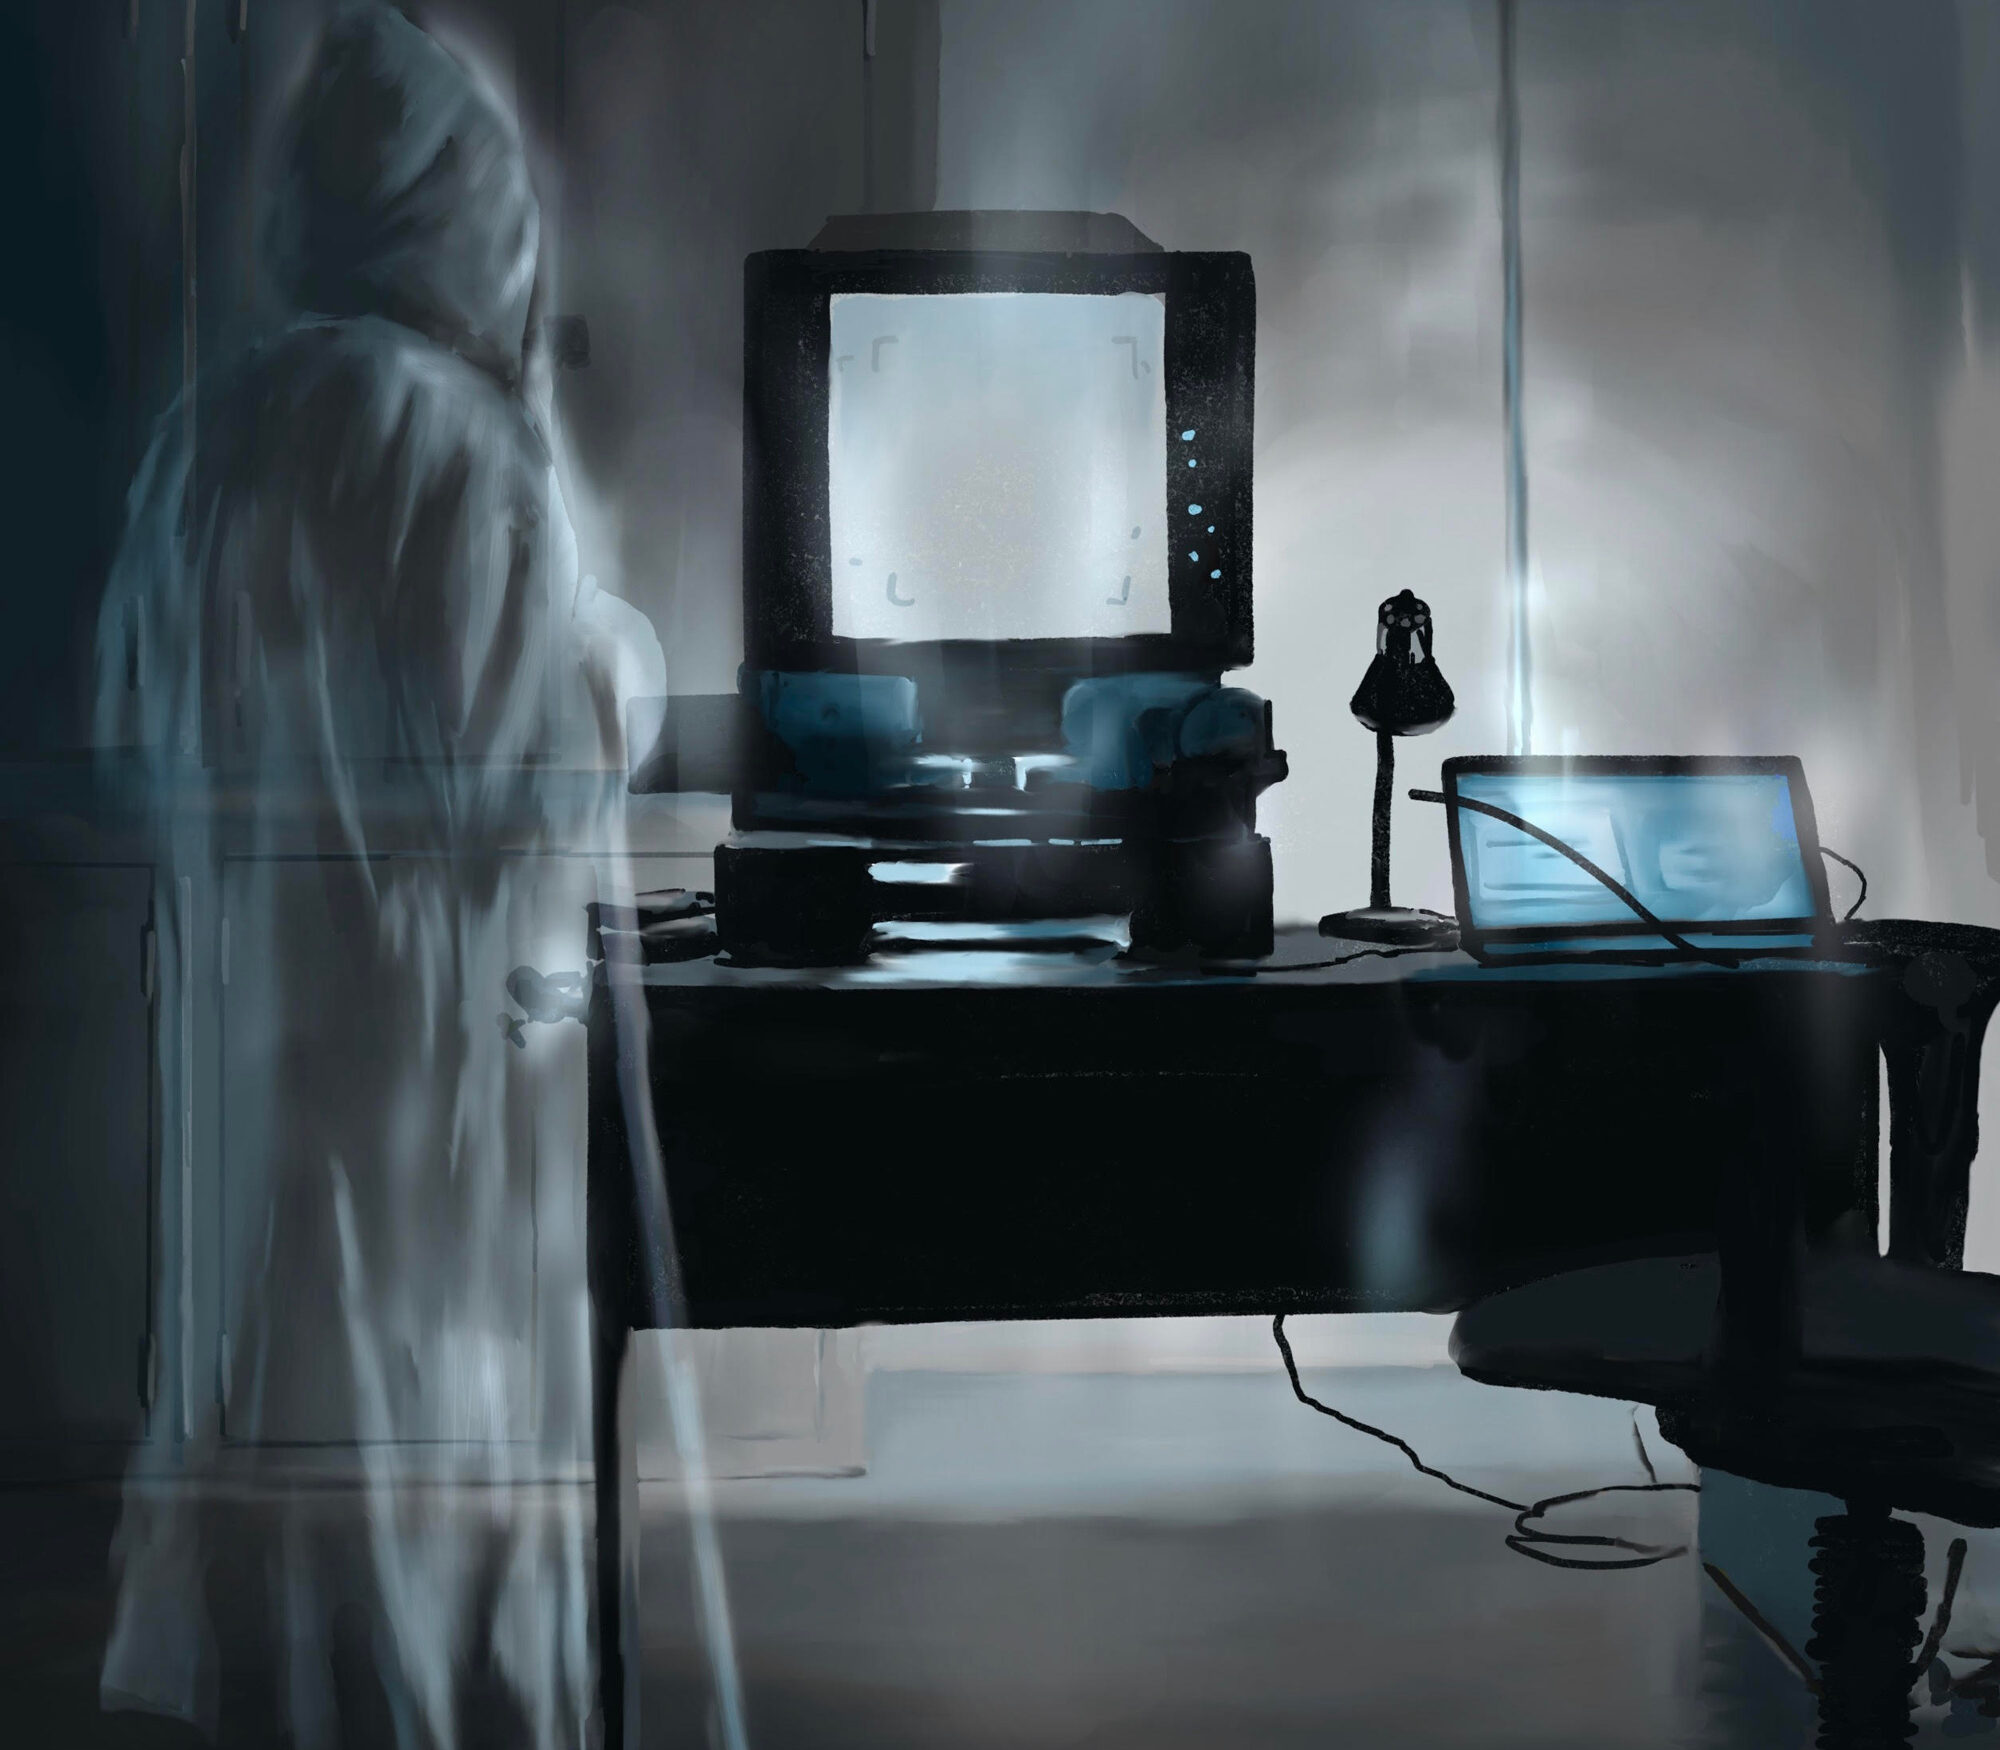 Painting of a ghost in an office